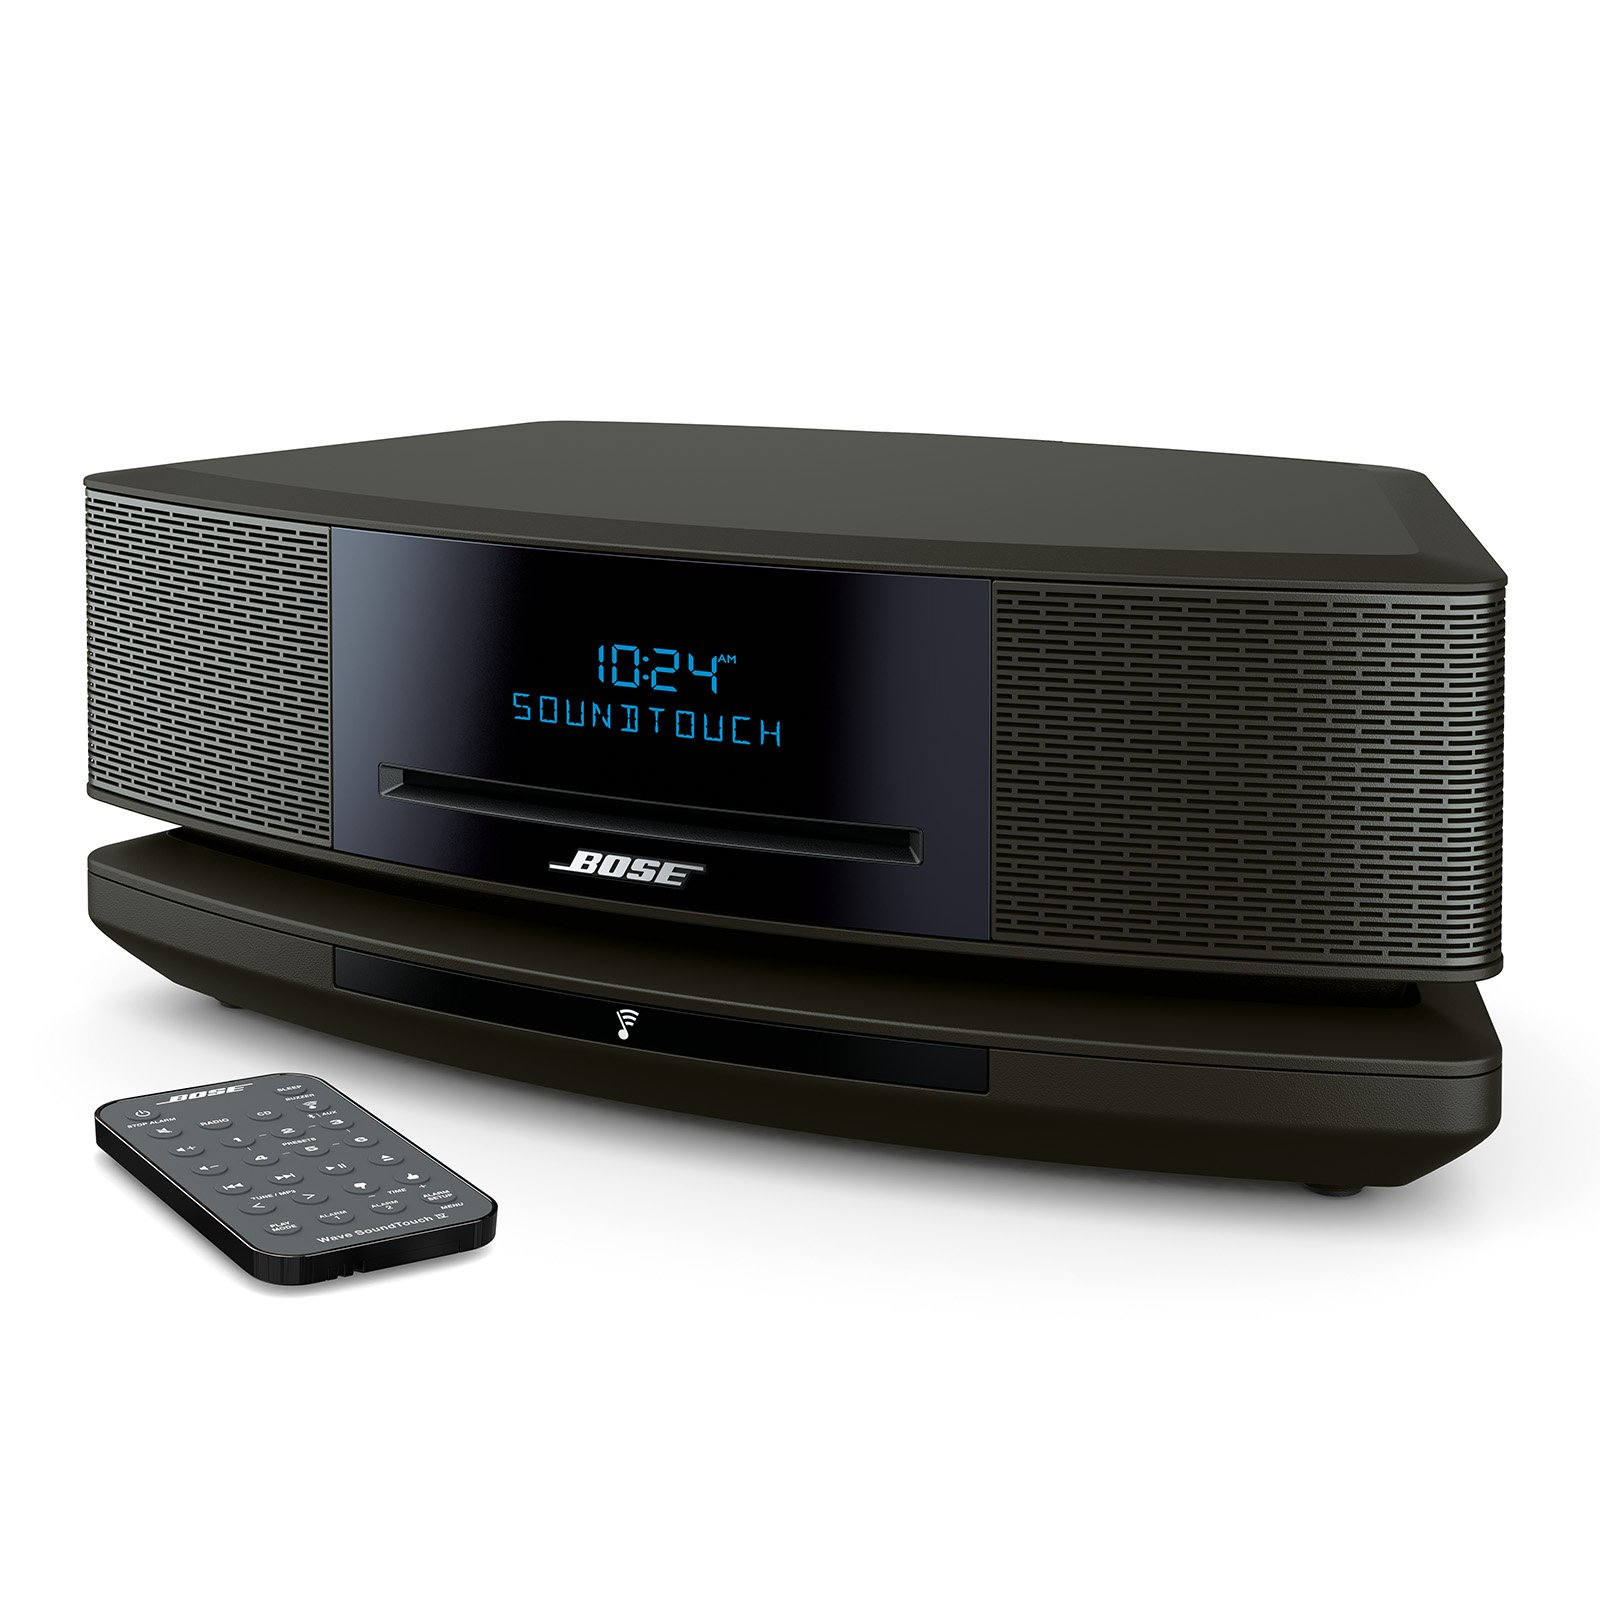 Bose Wave SoundTouch Music System IV, works with Alexa, Espresso Black by Bose